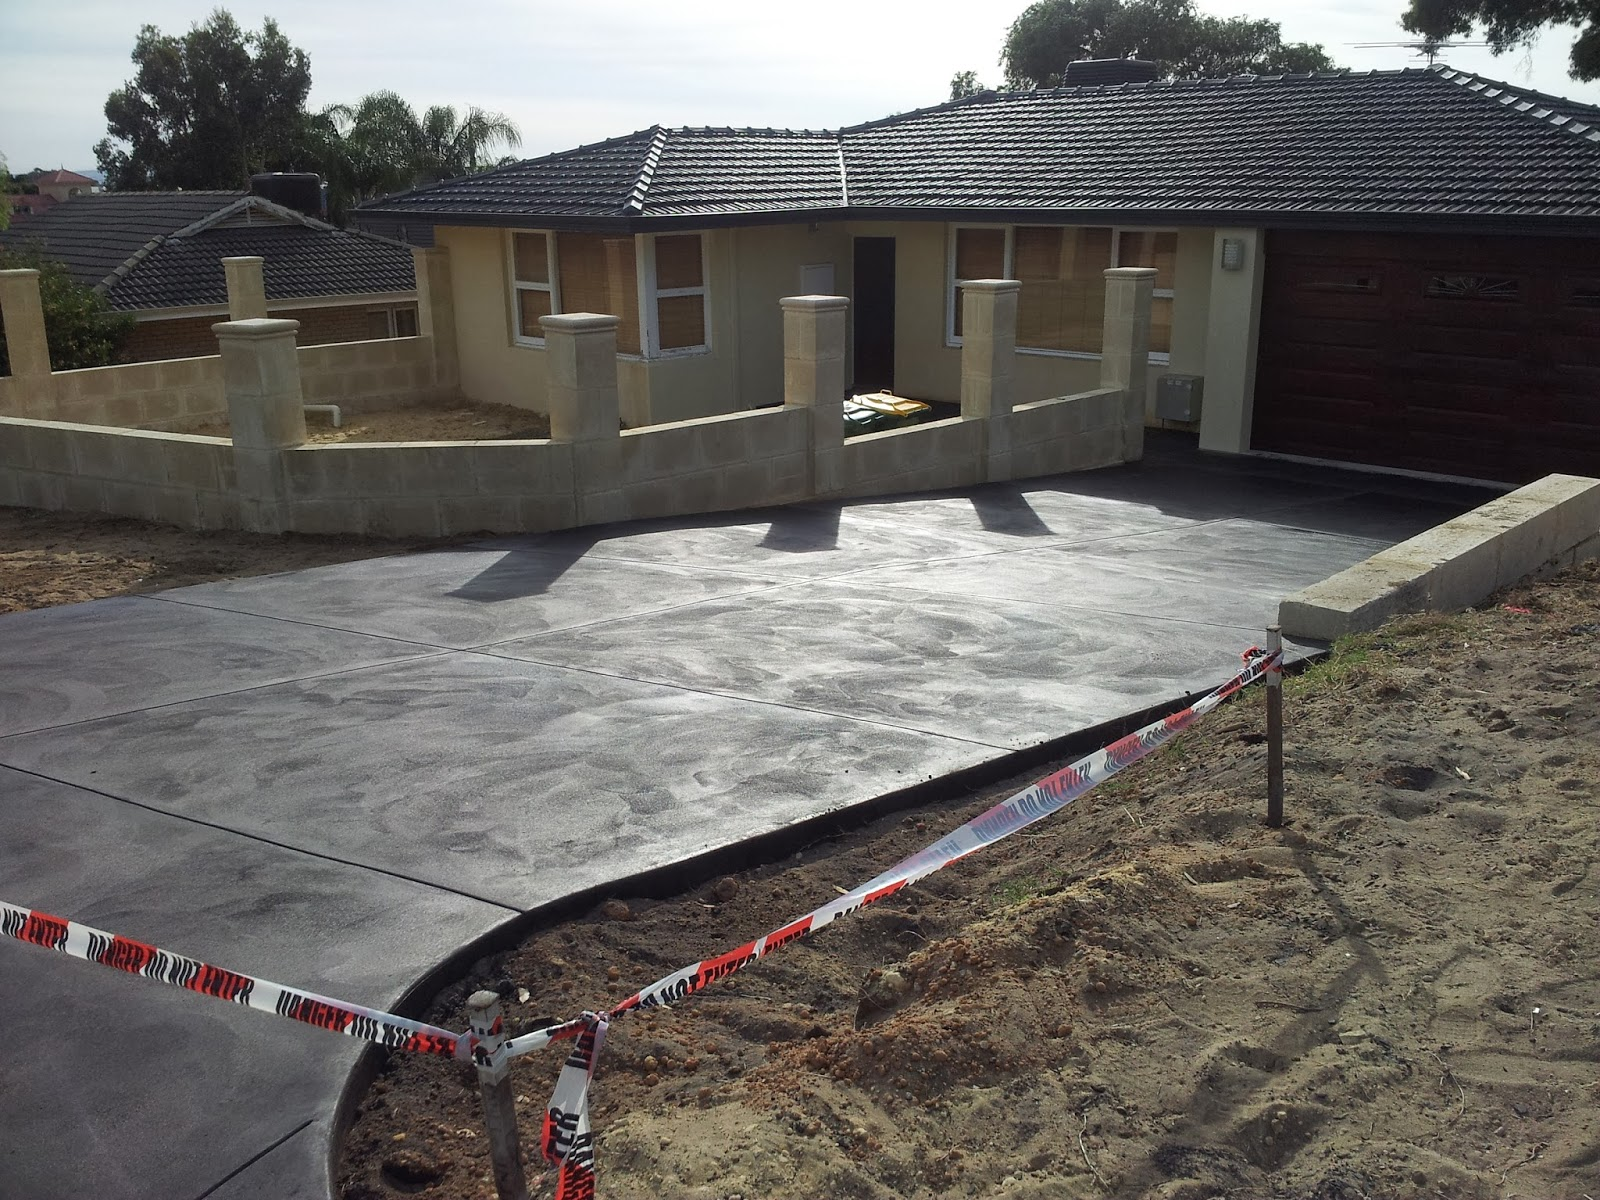 http://jarrahjungle.blogspot.com.au/2013/11/say-hello-to-my-new-shiny-flat-driveway.html